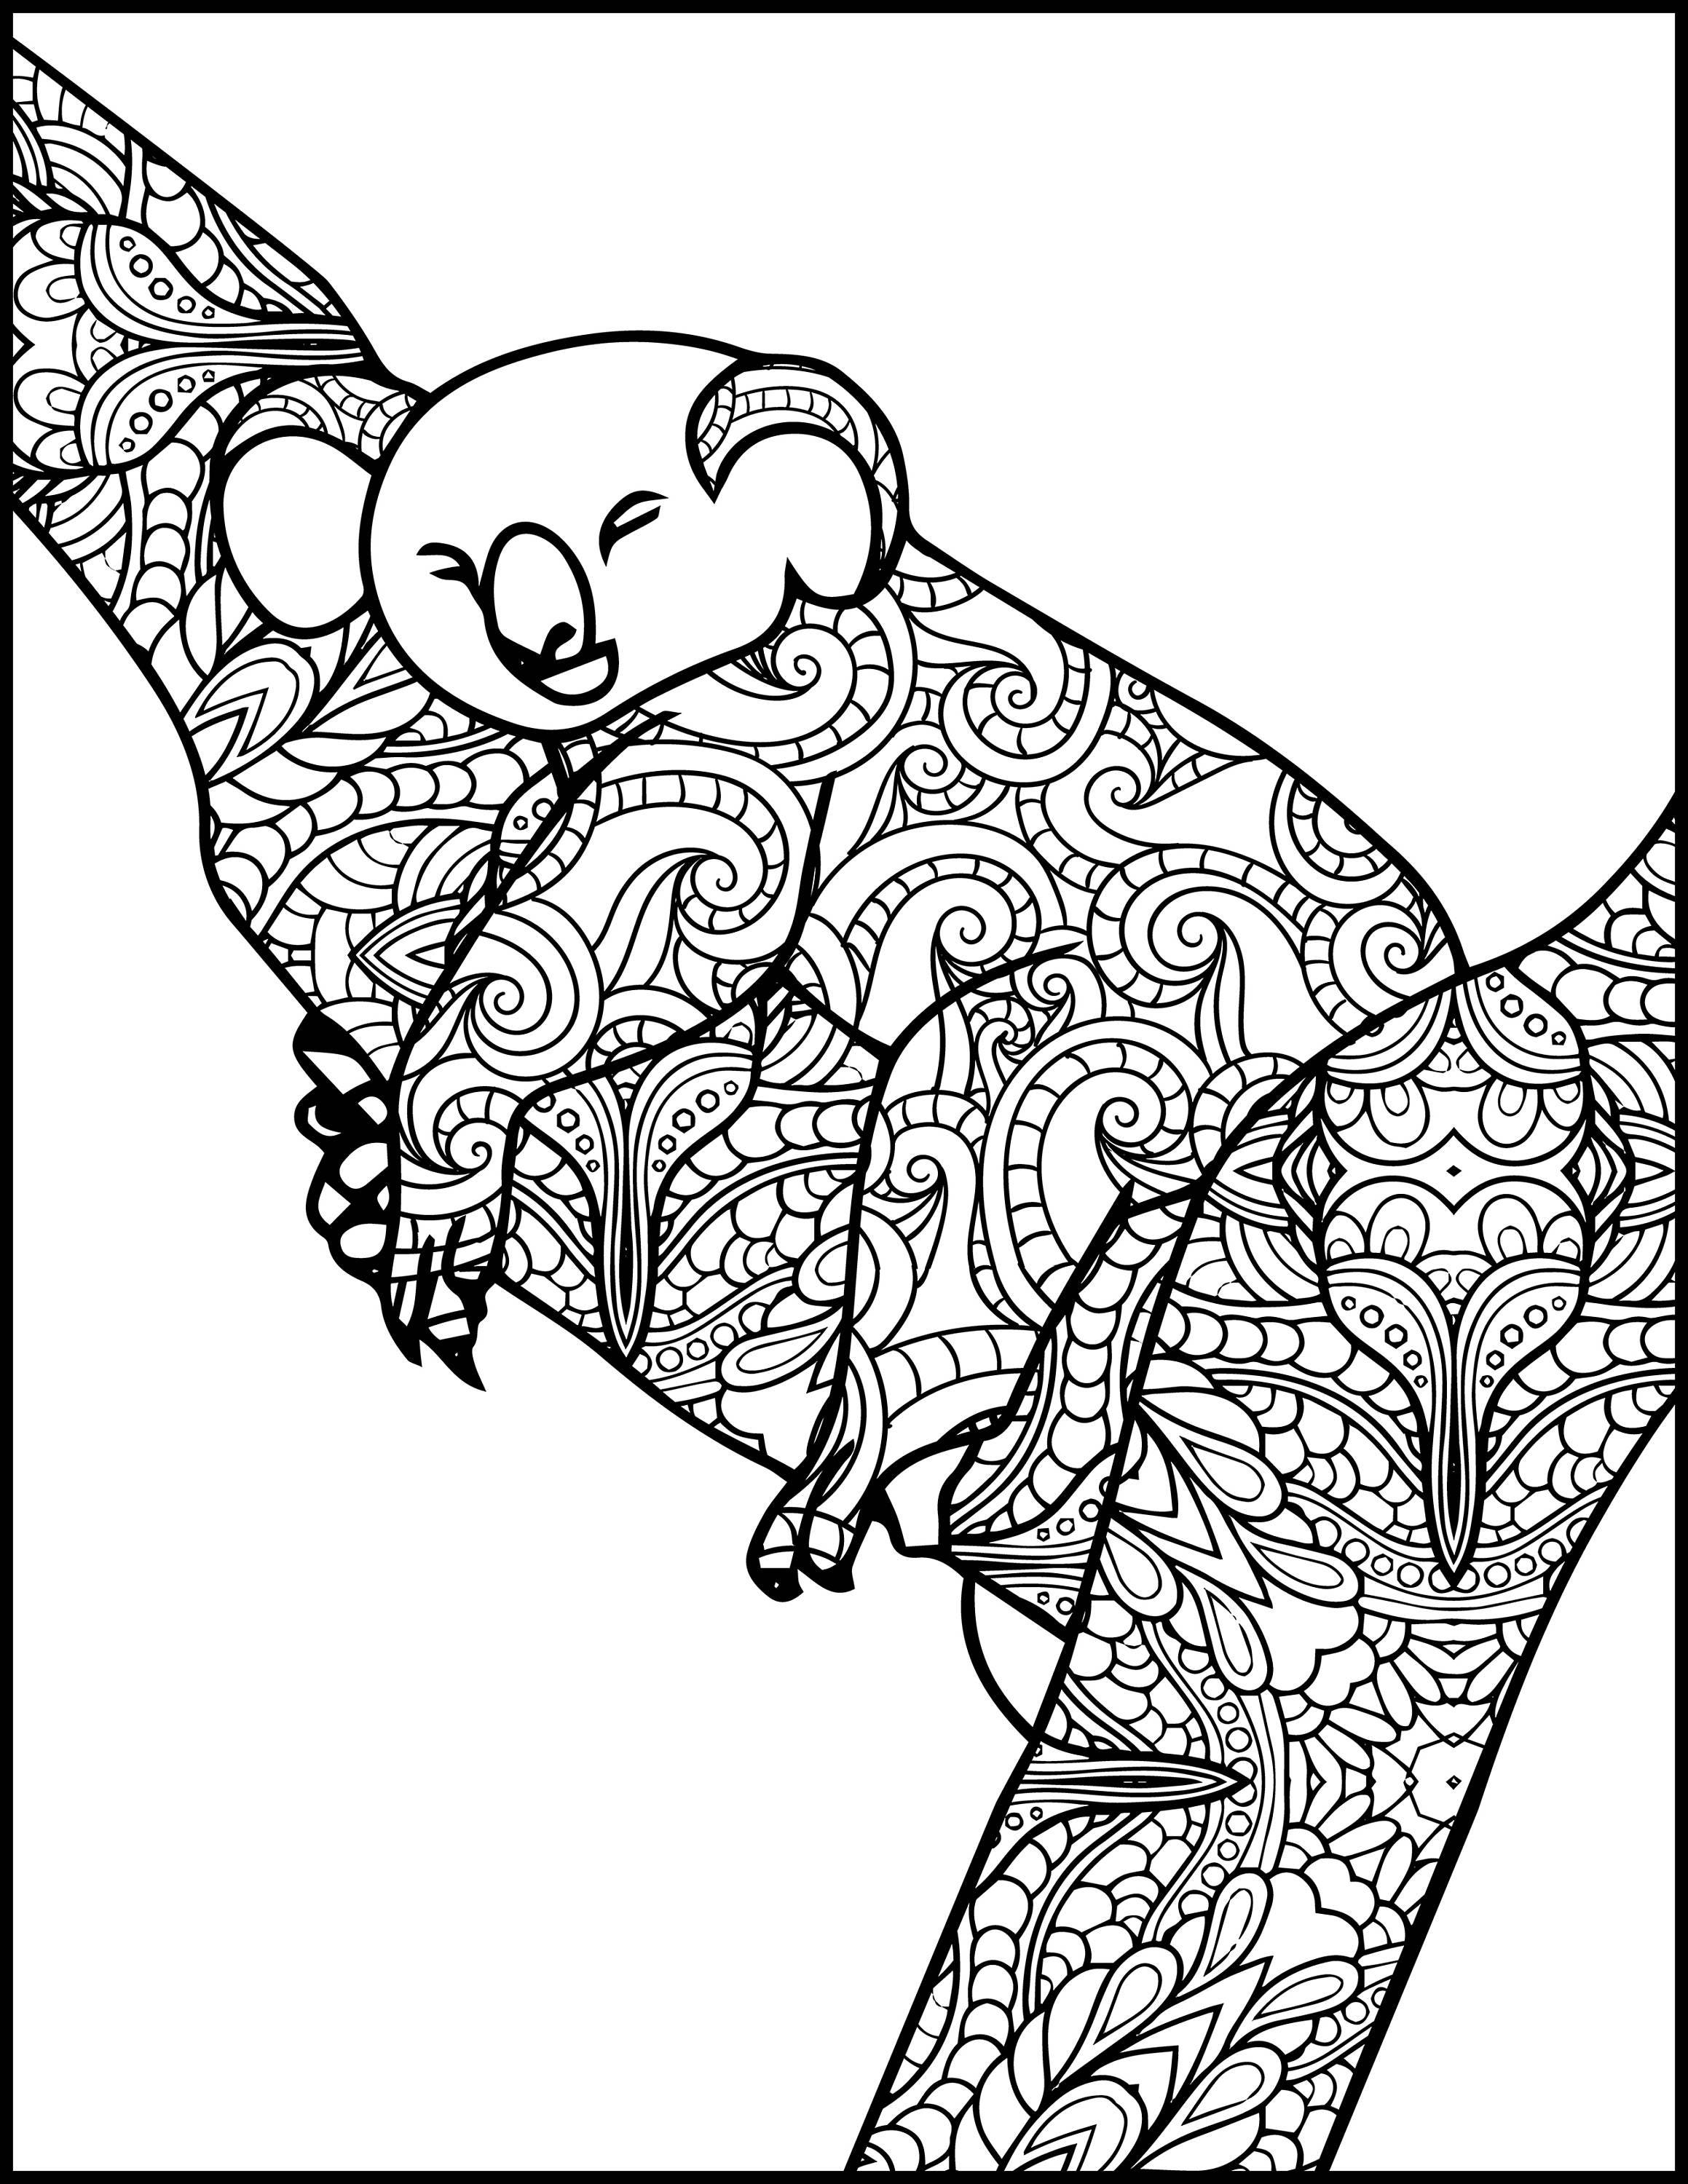 Animal Adult Coloring Page Koala Printable Coloring Page ...